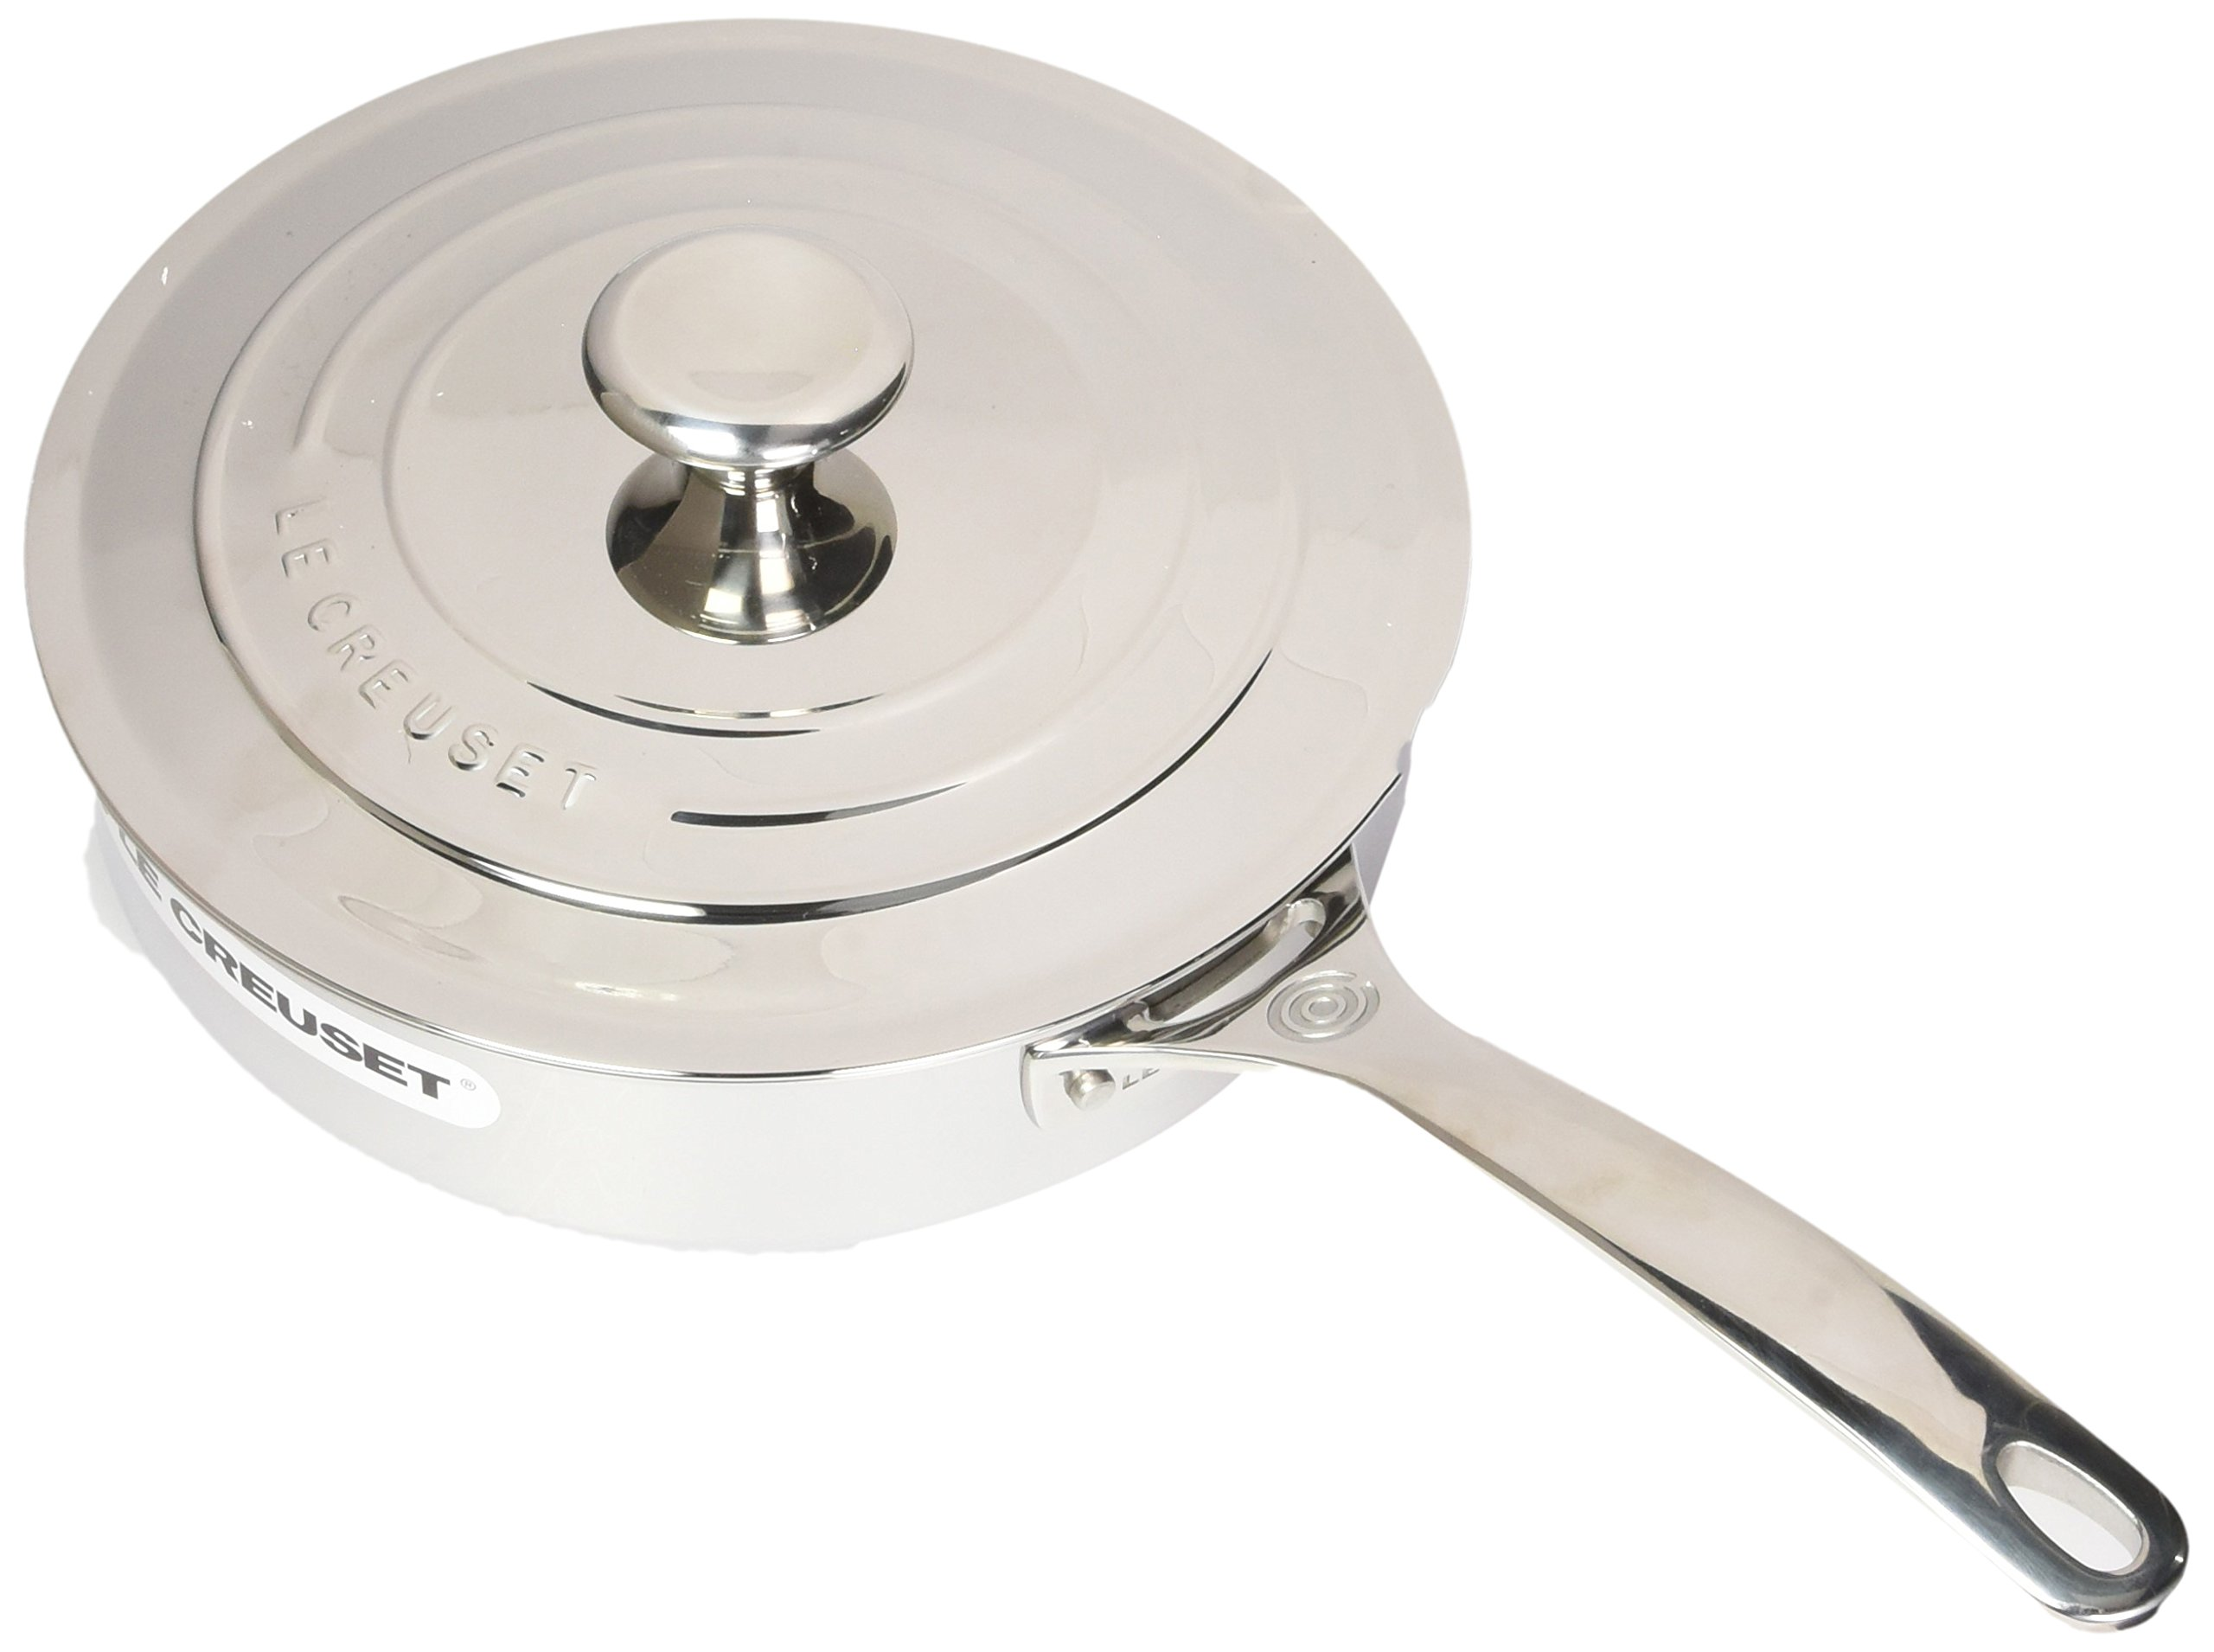 Le Creuset Tri-Ply Stainless Steel Saute Pan with Lid, 3-Quart